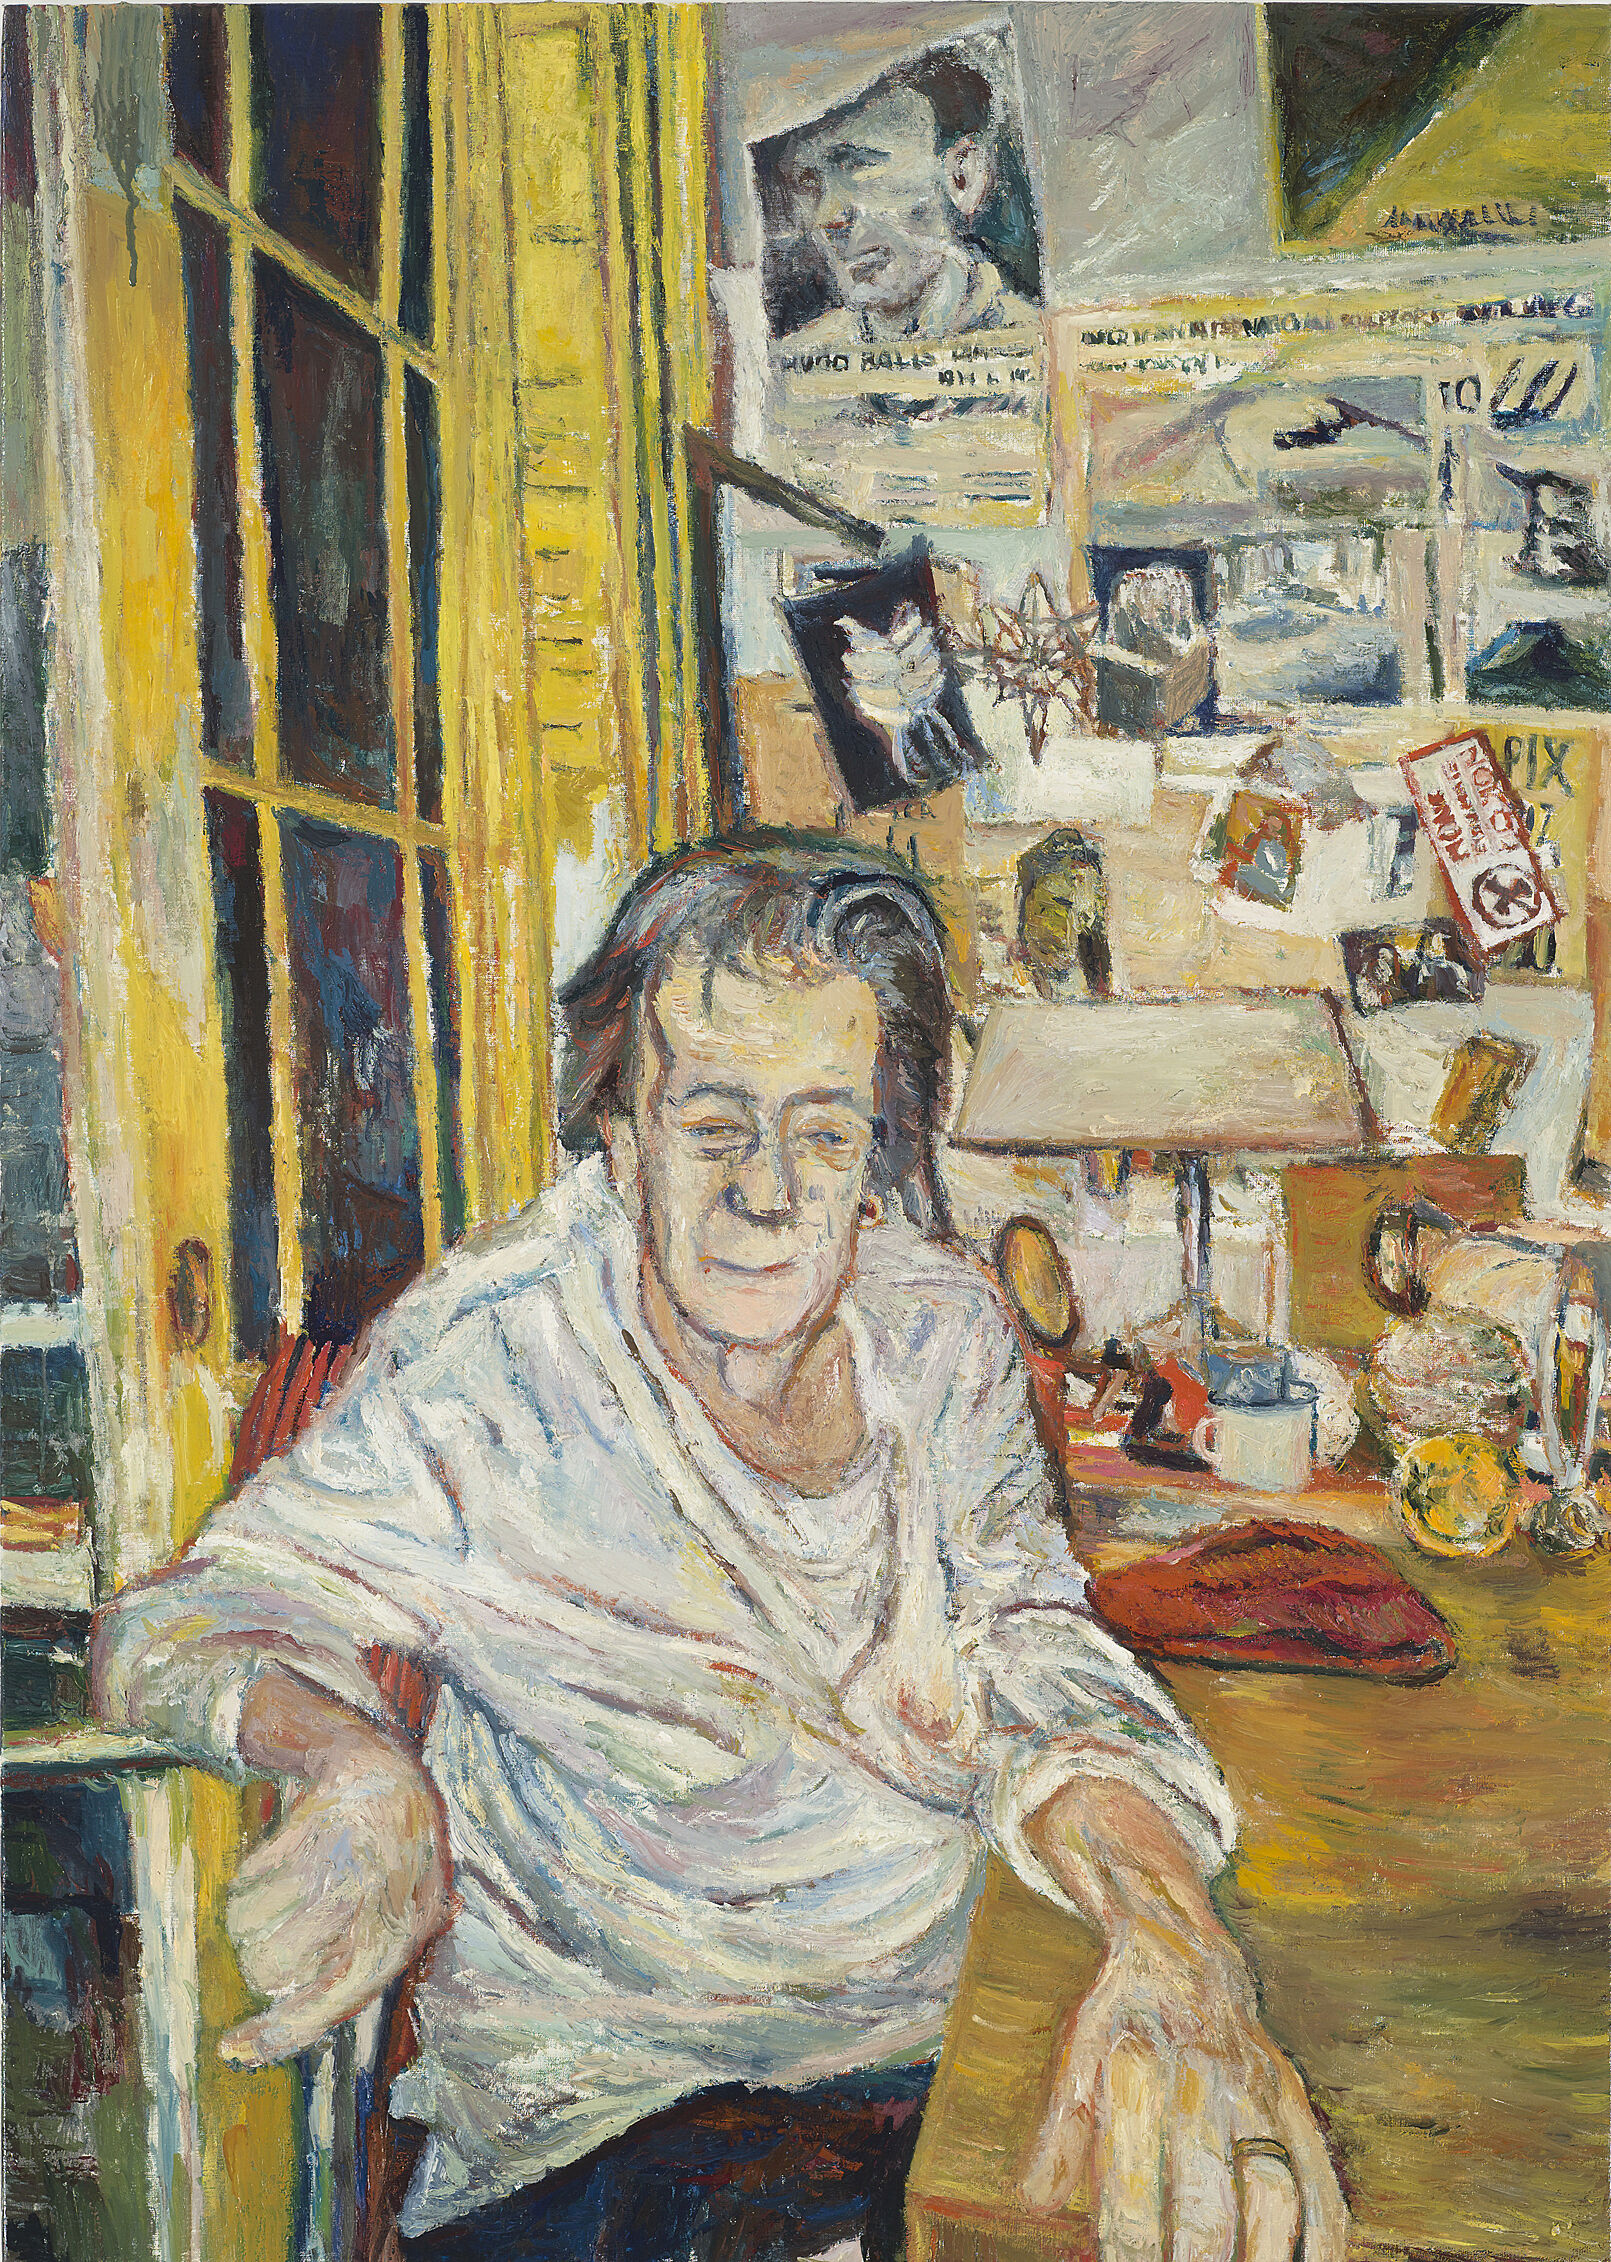 A painting of a woman sitting in a study.